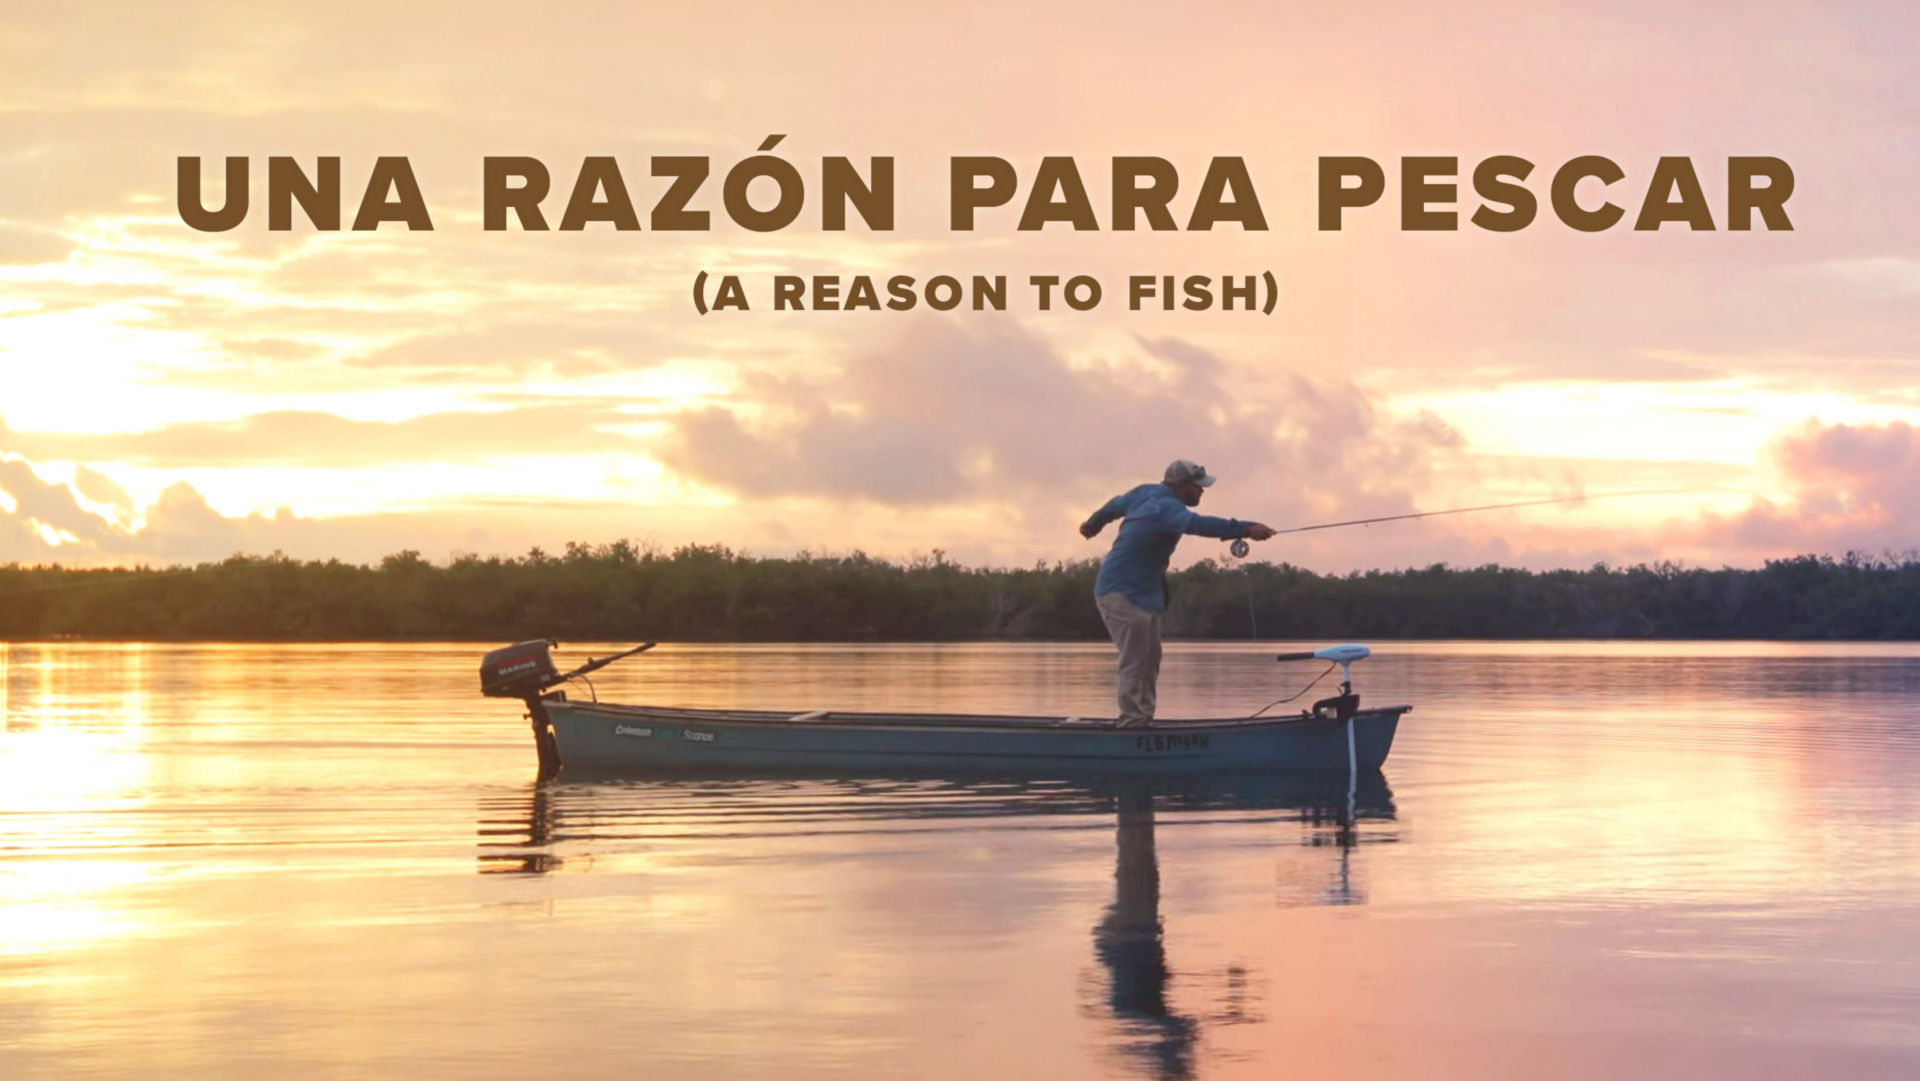 Una Razon Para Pescar video with image of Dan Diez fishing from his boat